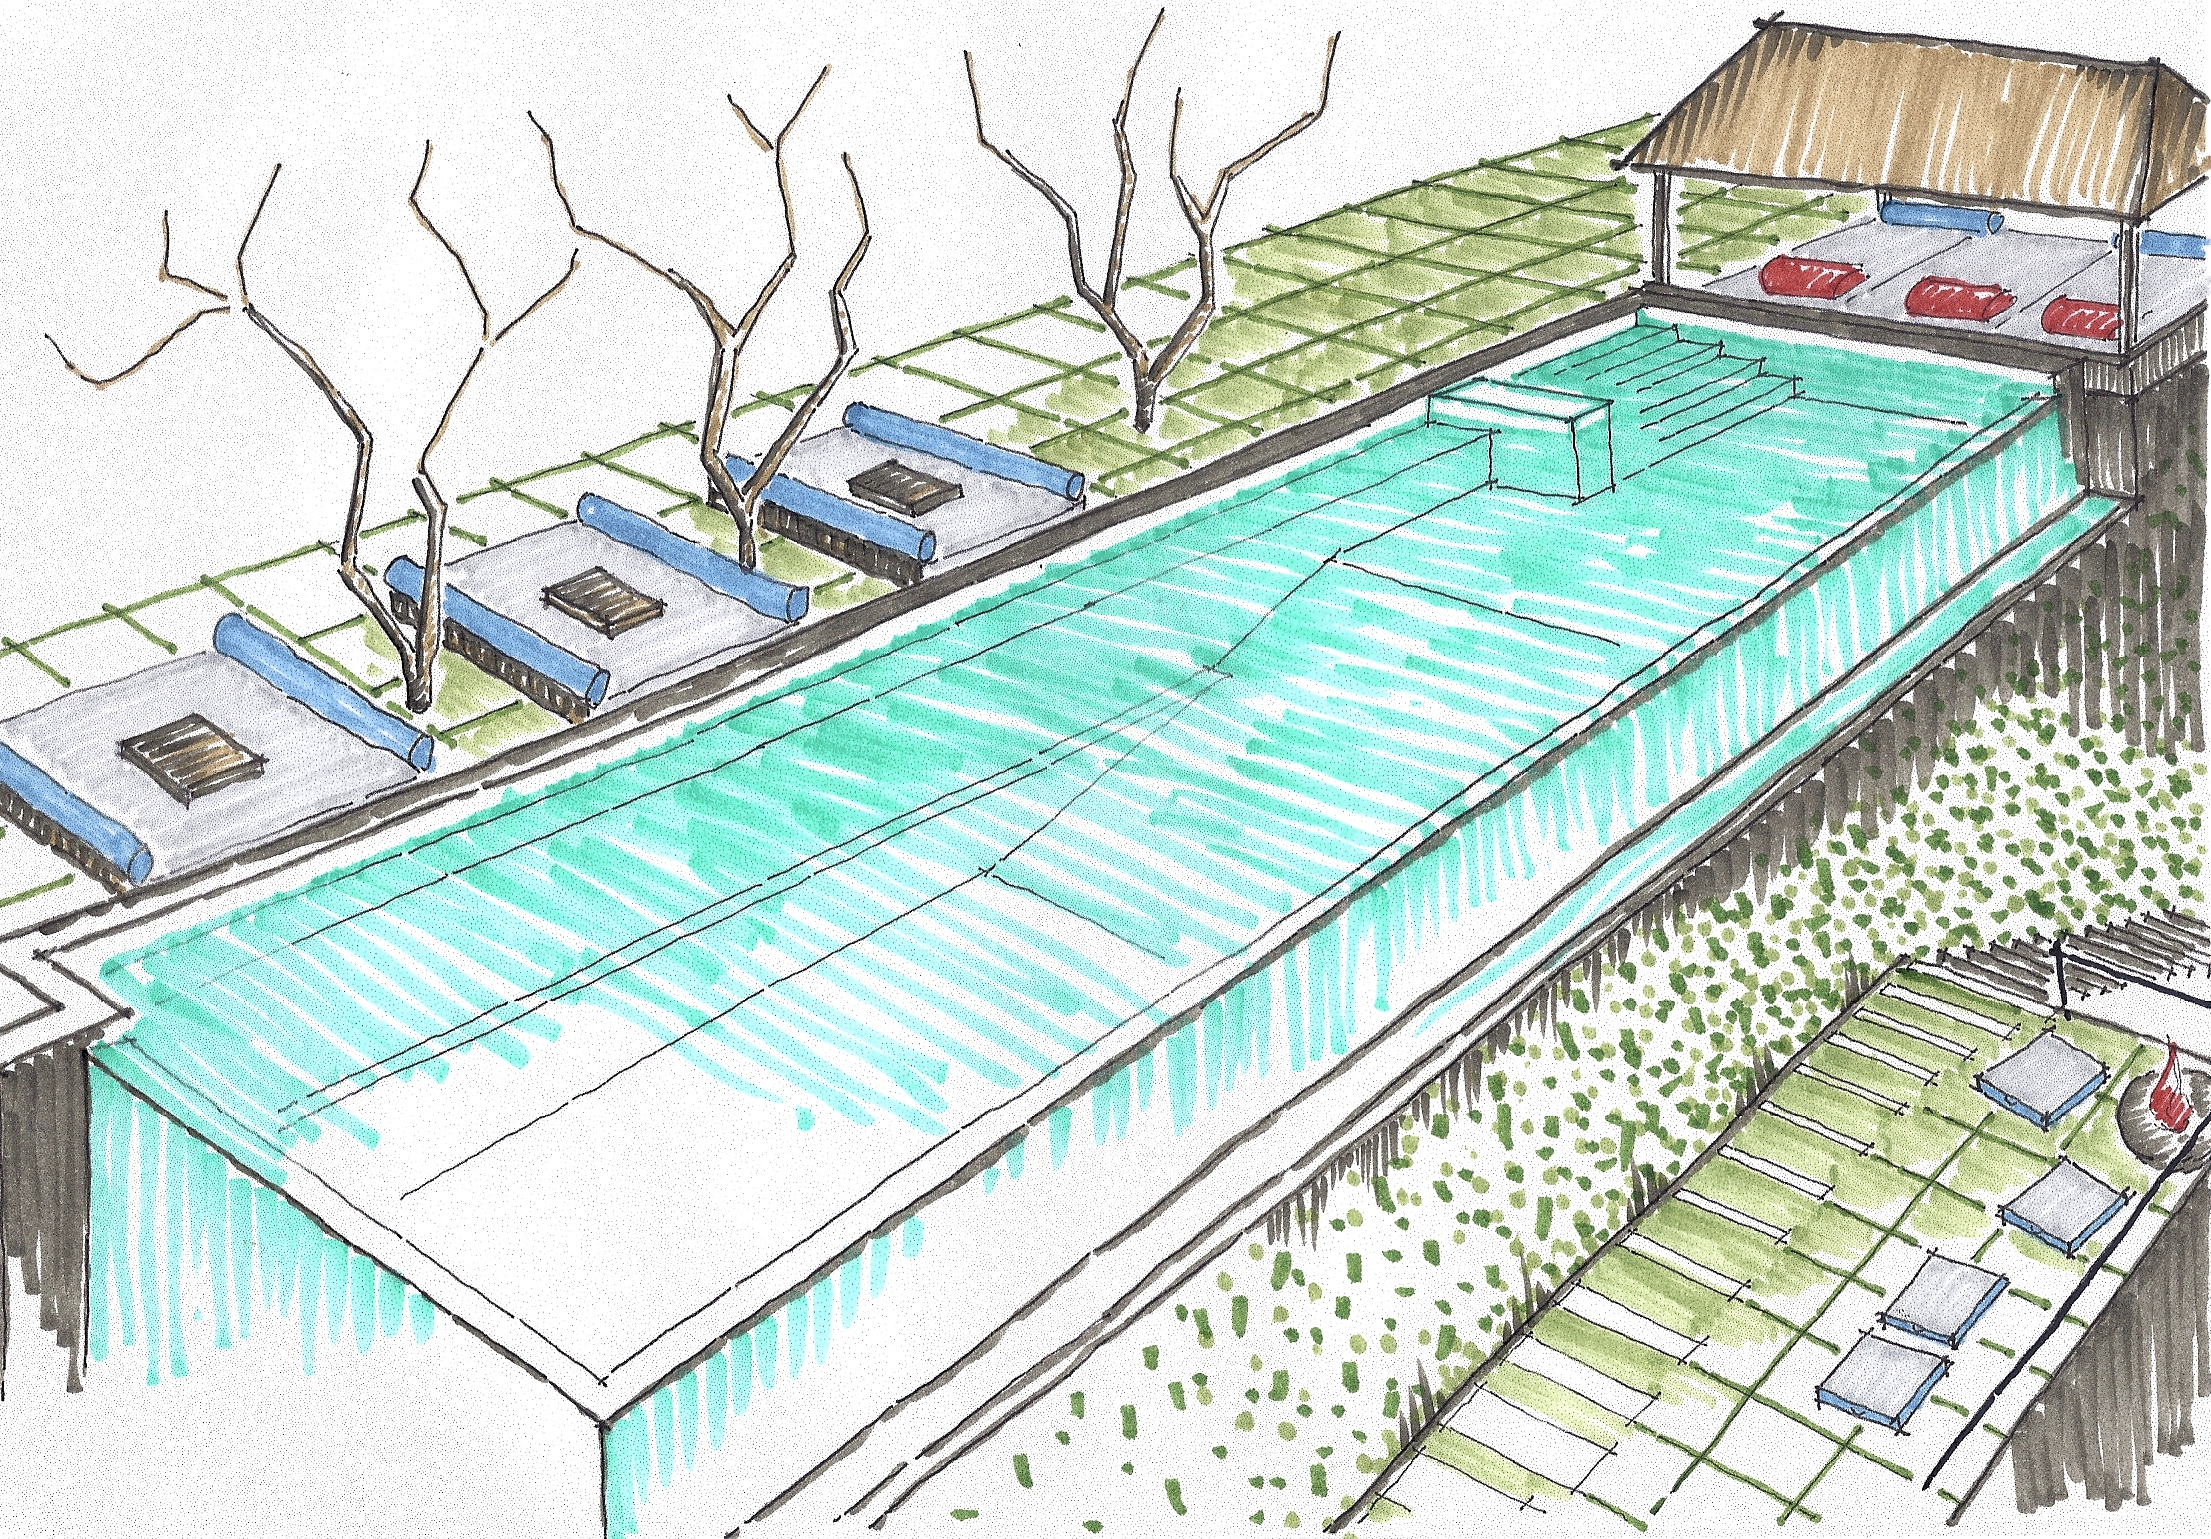 Swimming pools drawing at free for for Pool design drawings